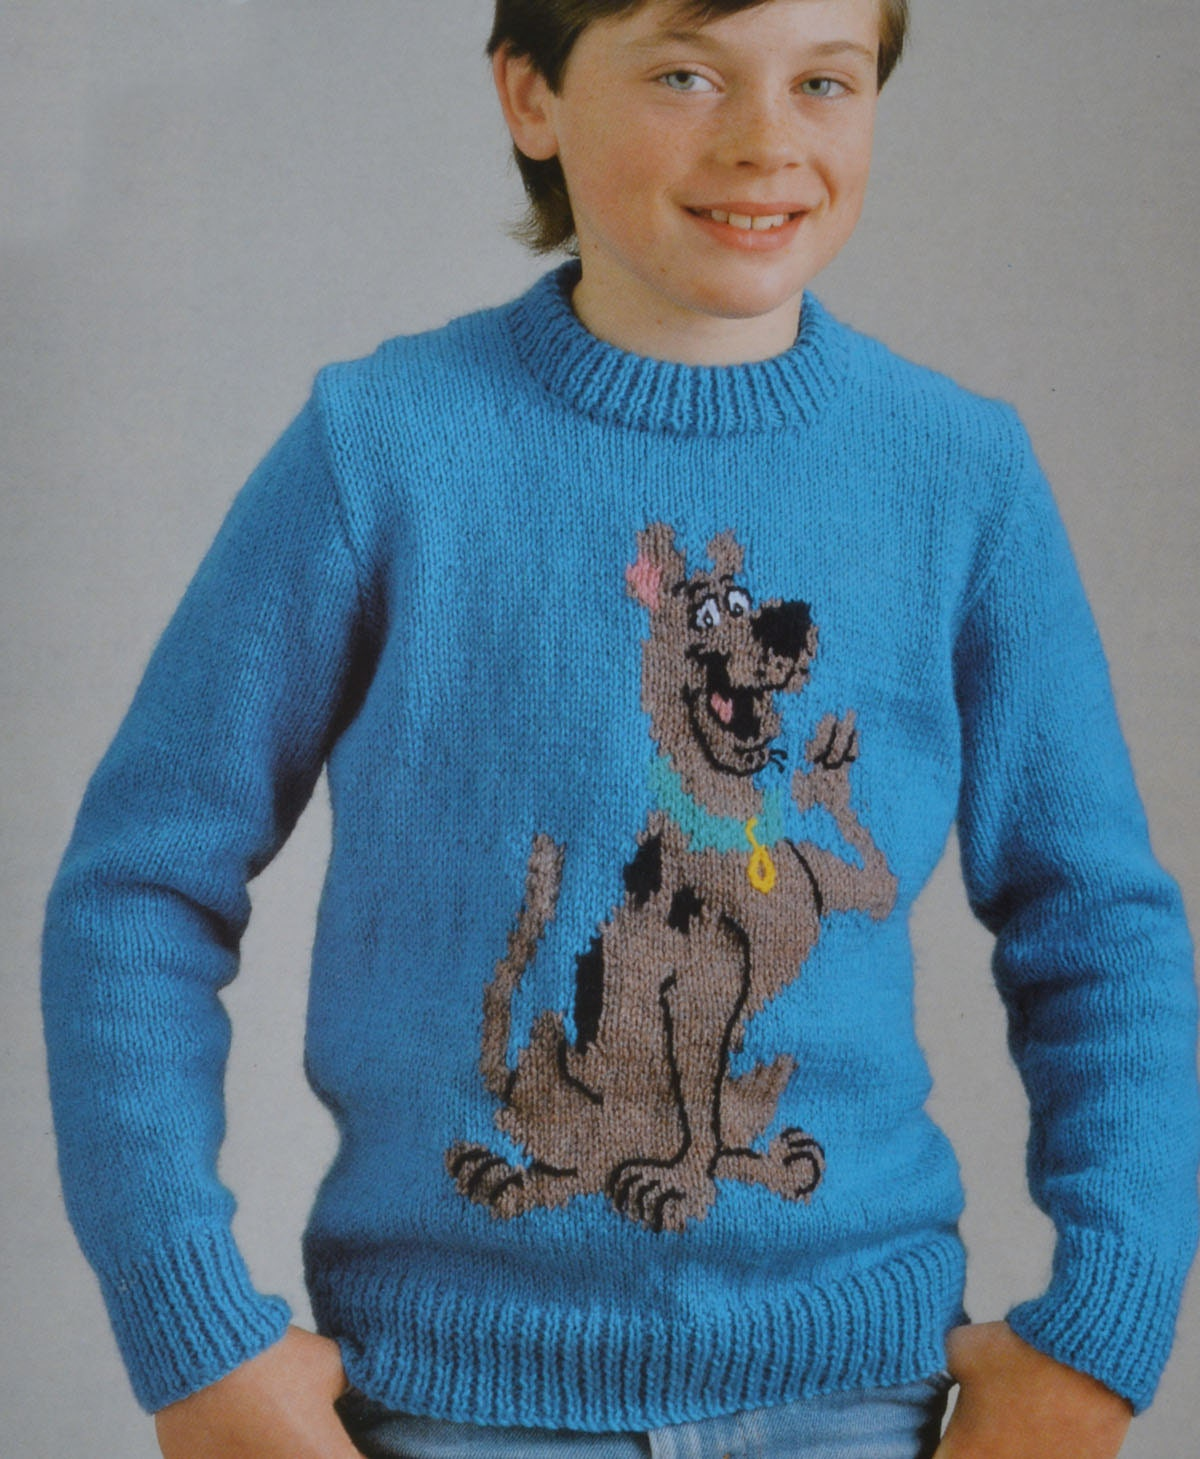 ALMOST FREE Vintage Girl Cardigan Knitting Pattern Knitted  Pattern Pdf Instant Download Easy Knitting Size 22 32  Double Knit